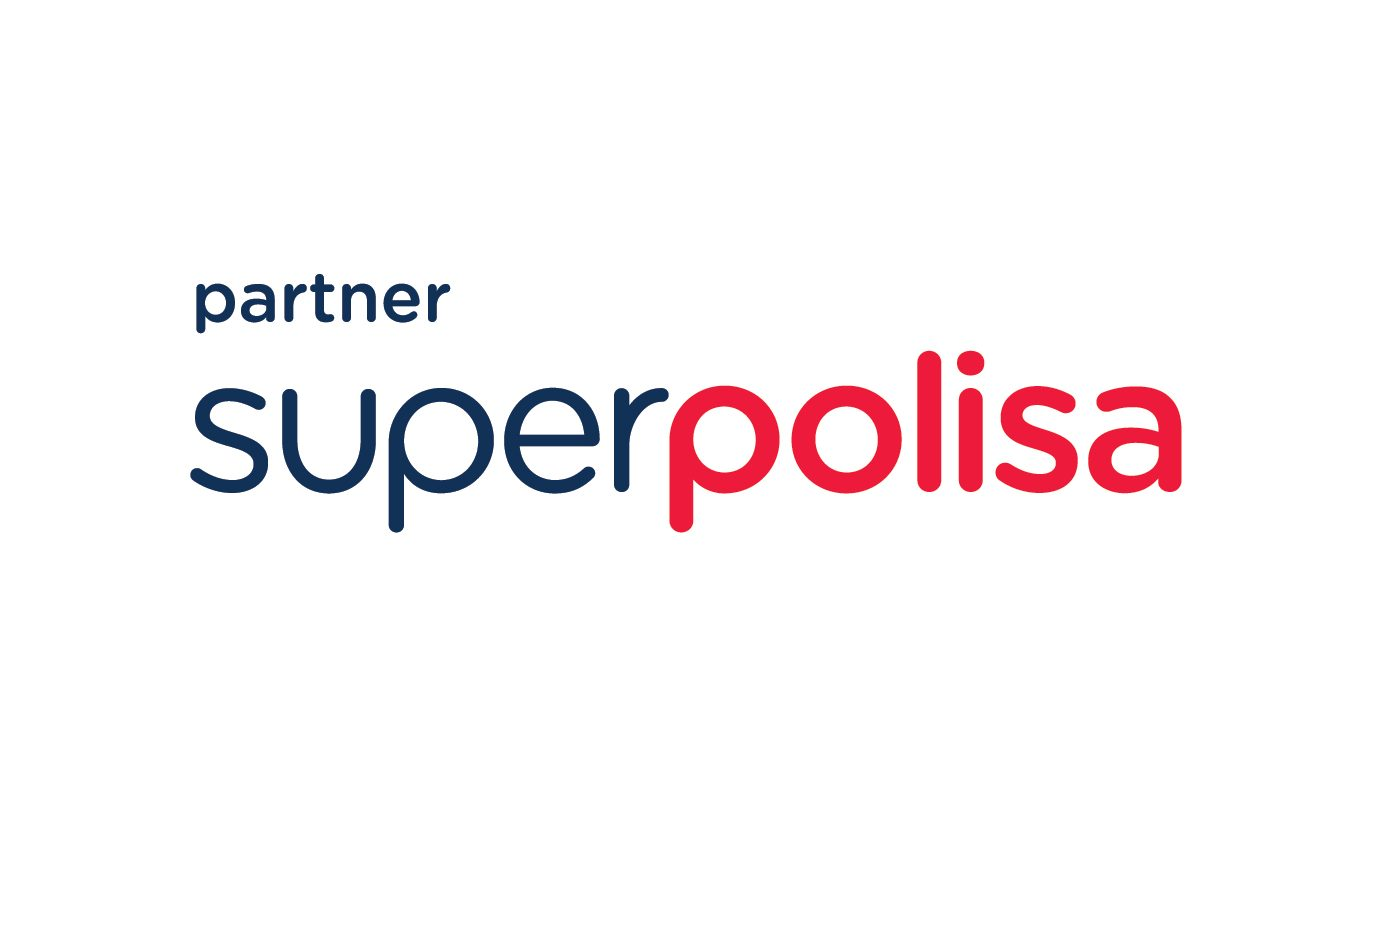 Superpolisa Placówka Partnerska Judyta Bury